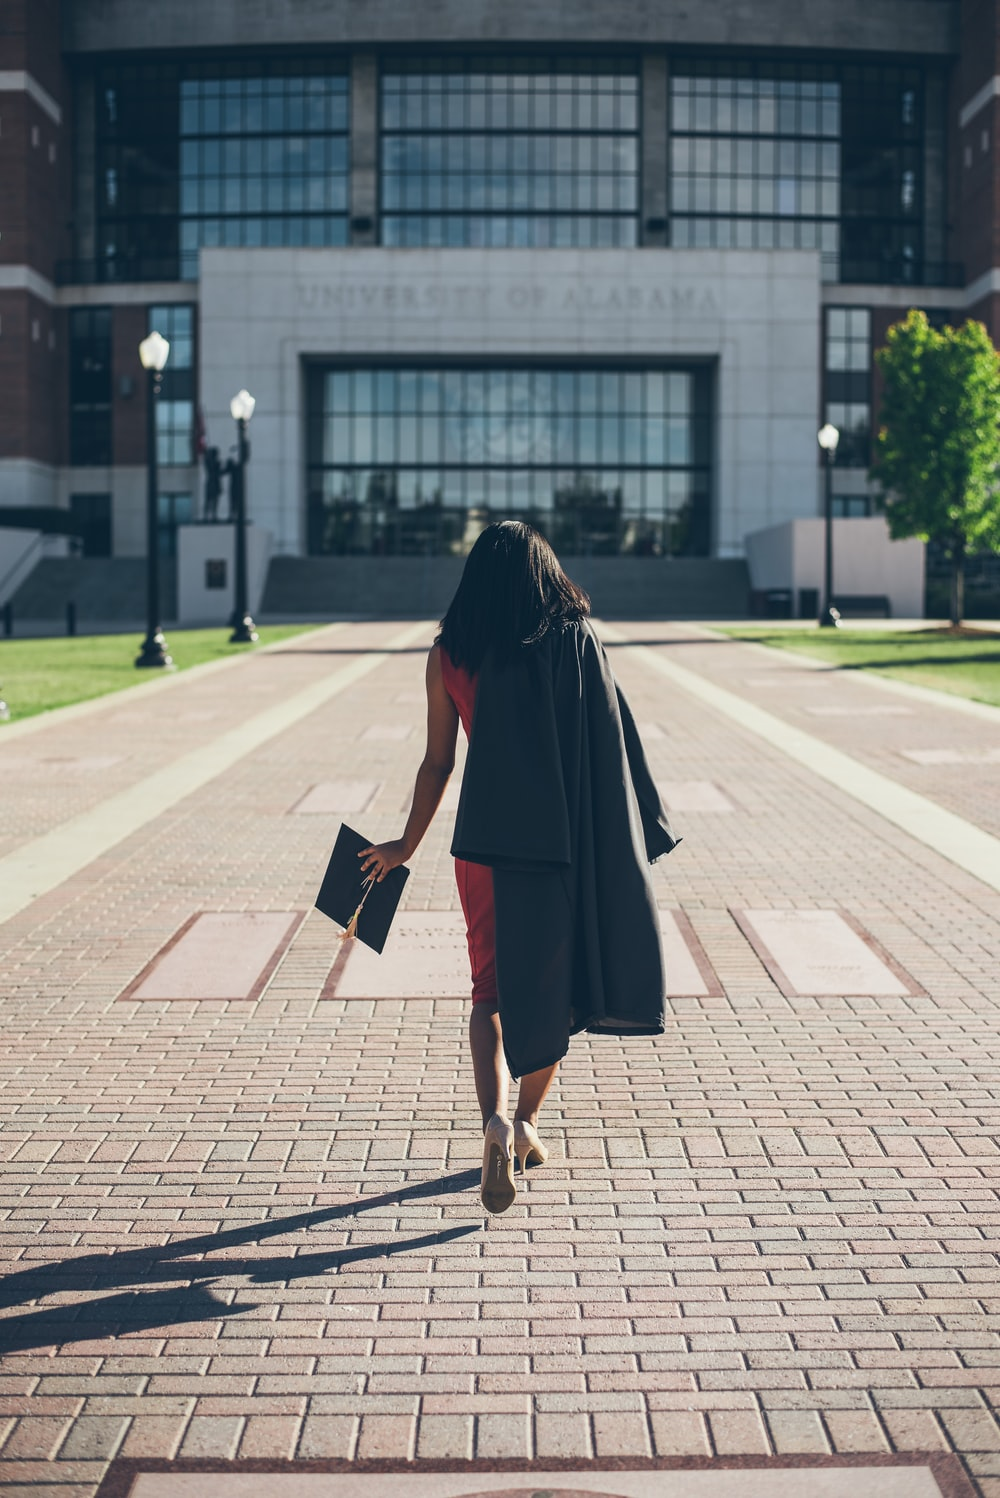 woman standing at facade of Alabama University building